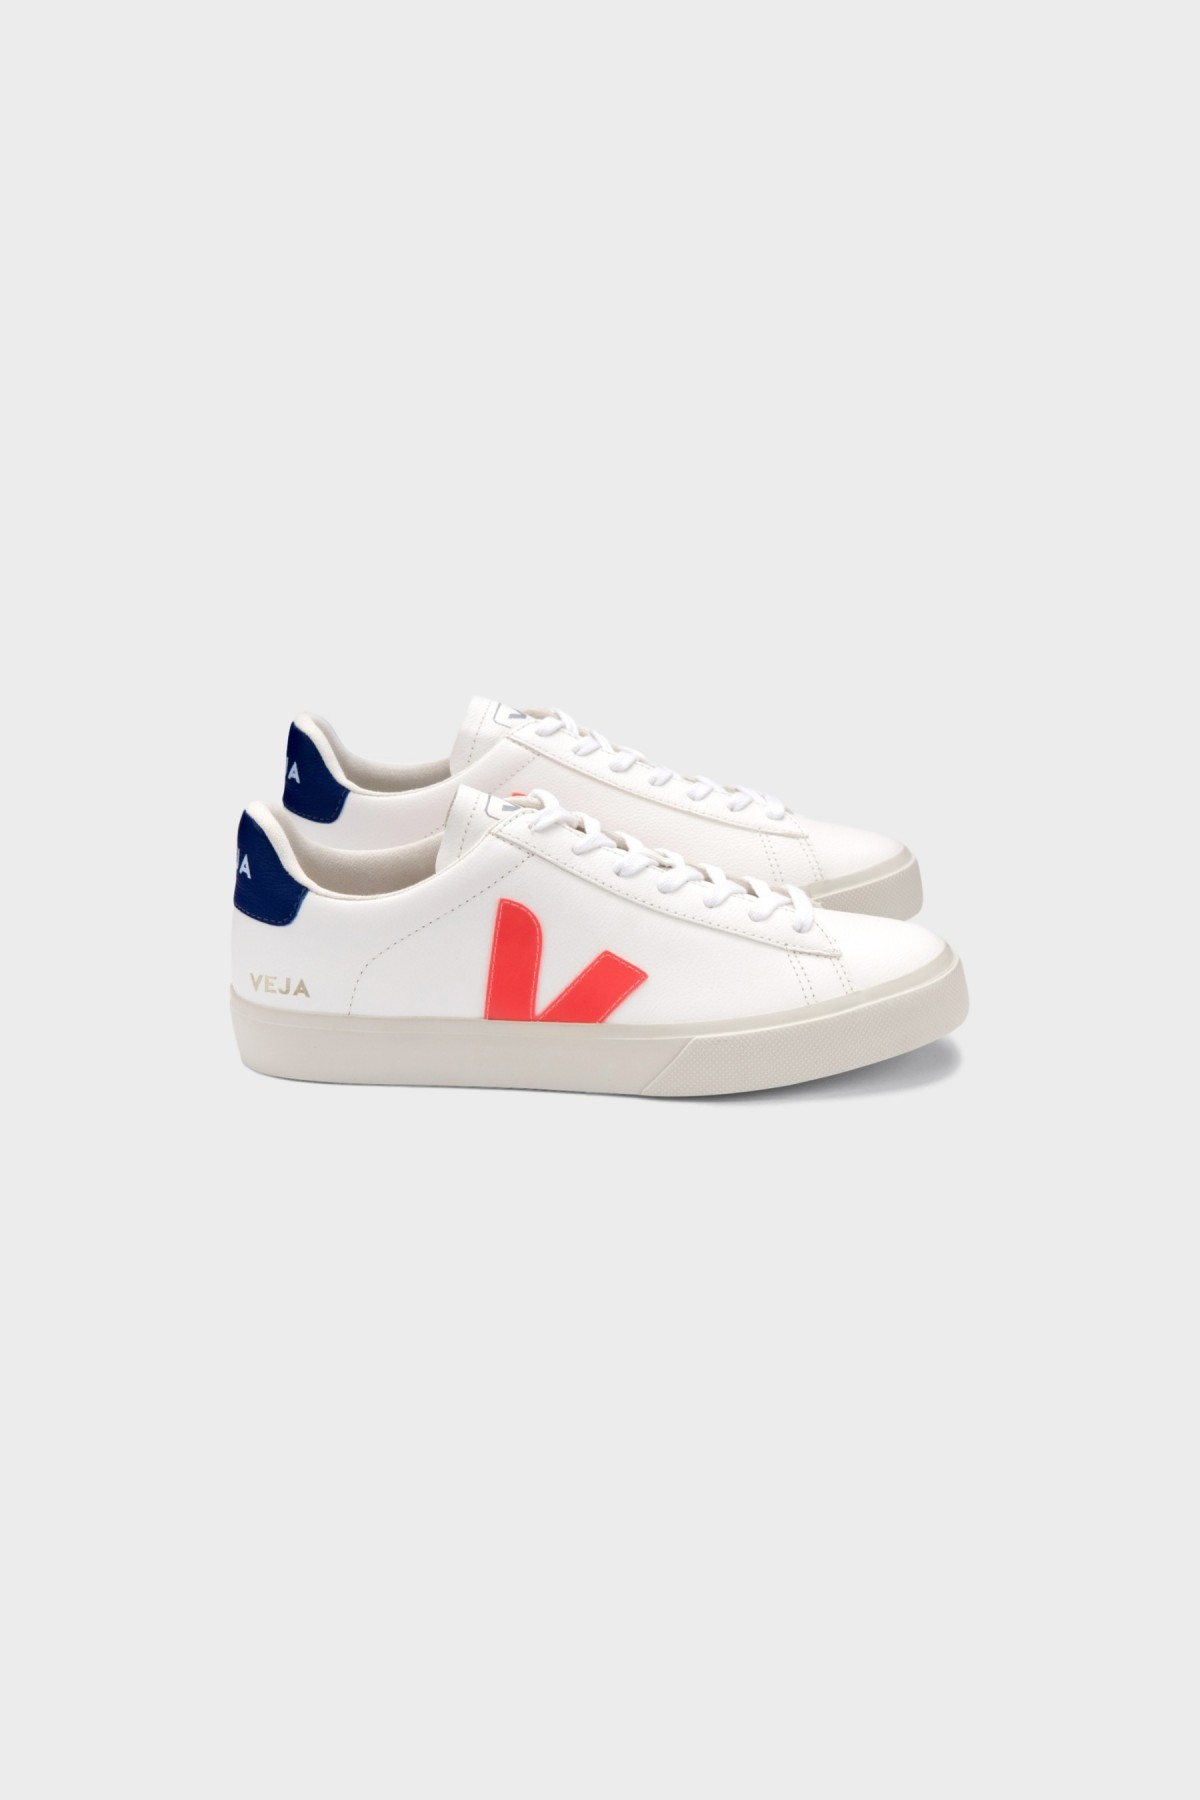 Veja Campo Chromefree Leather in Extra White Orange Fluo Cobalt